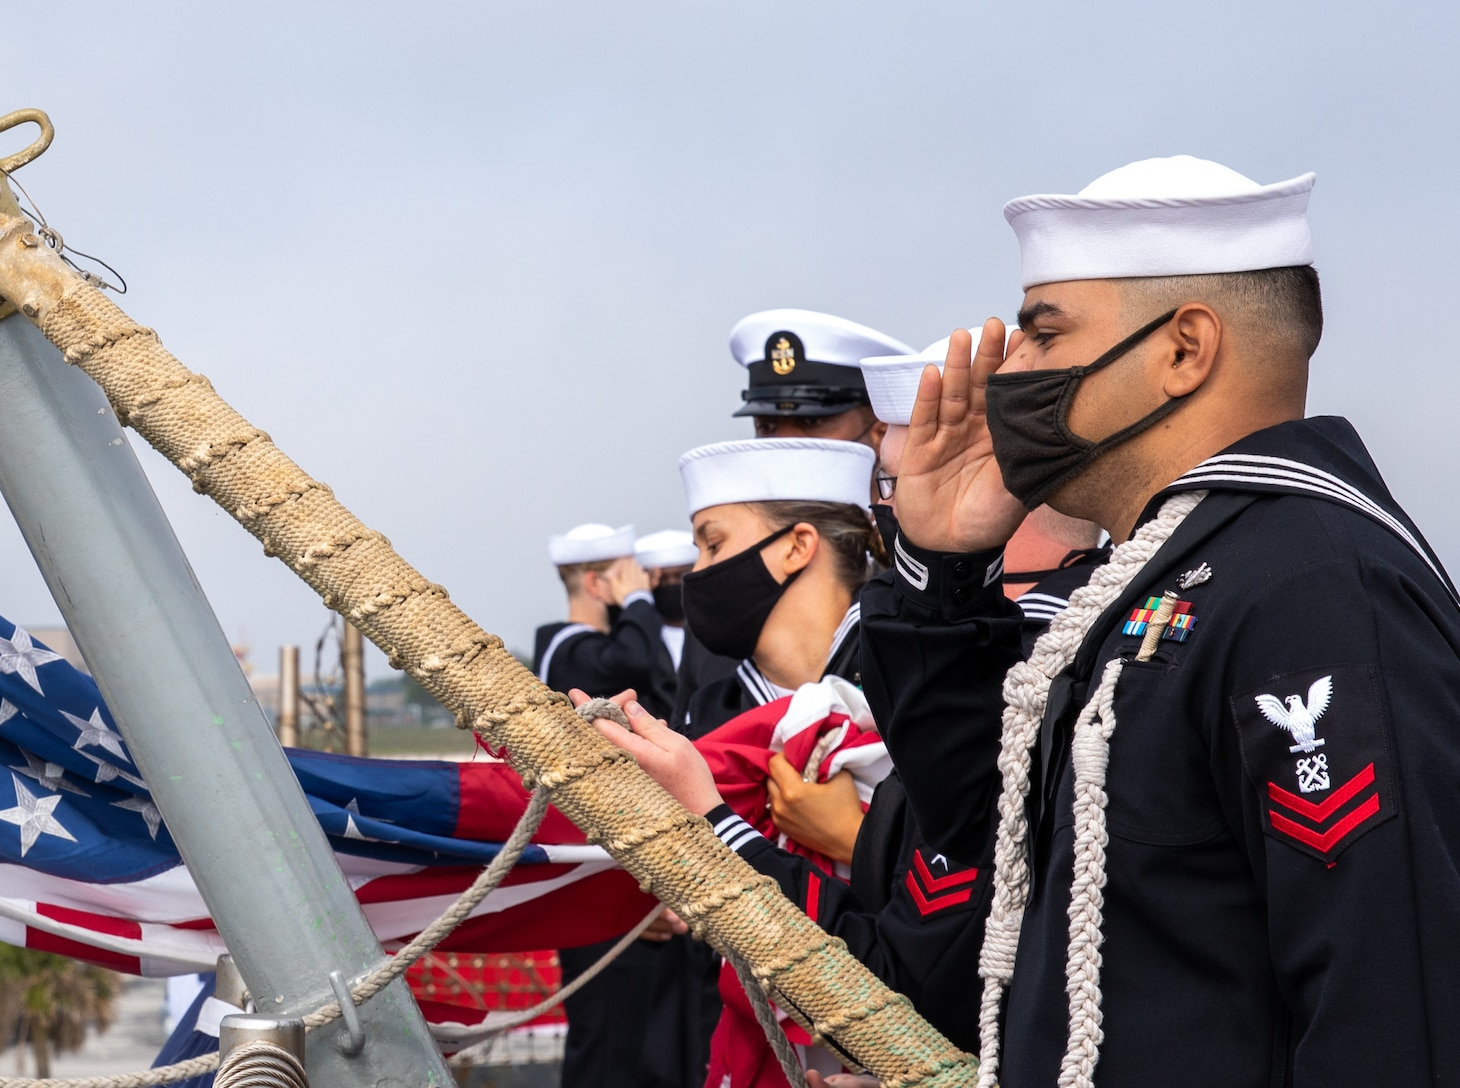 USS Fort McHenry (LSD 43) decommissions at Naval Station Mayport, Fla.